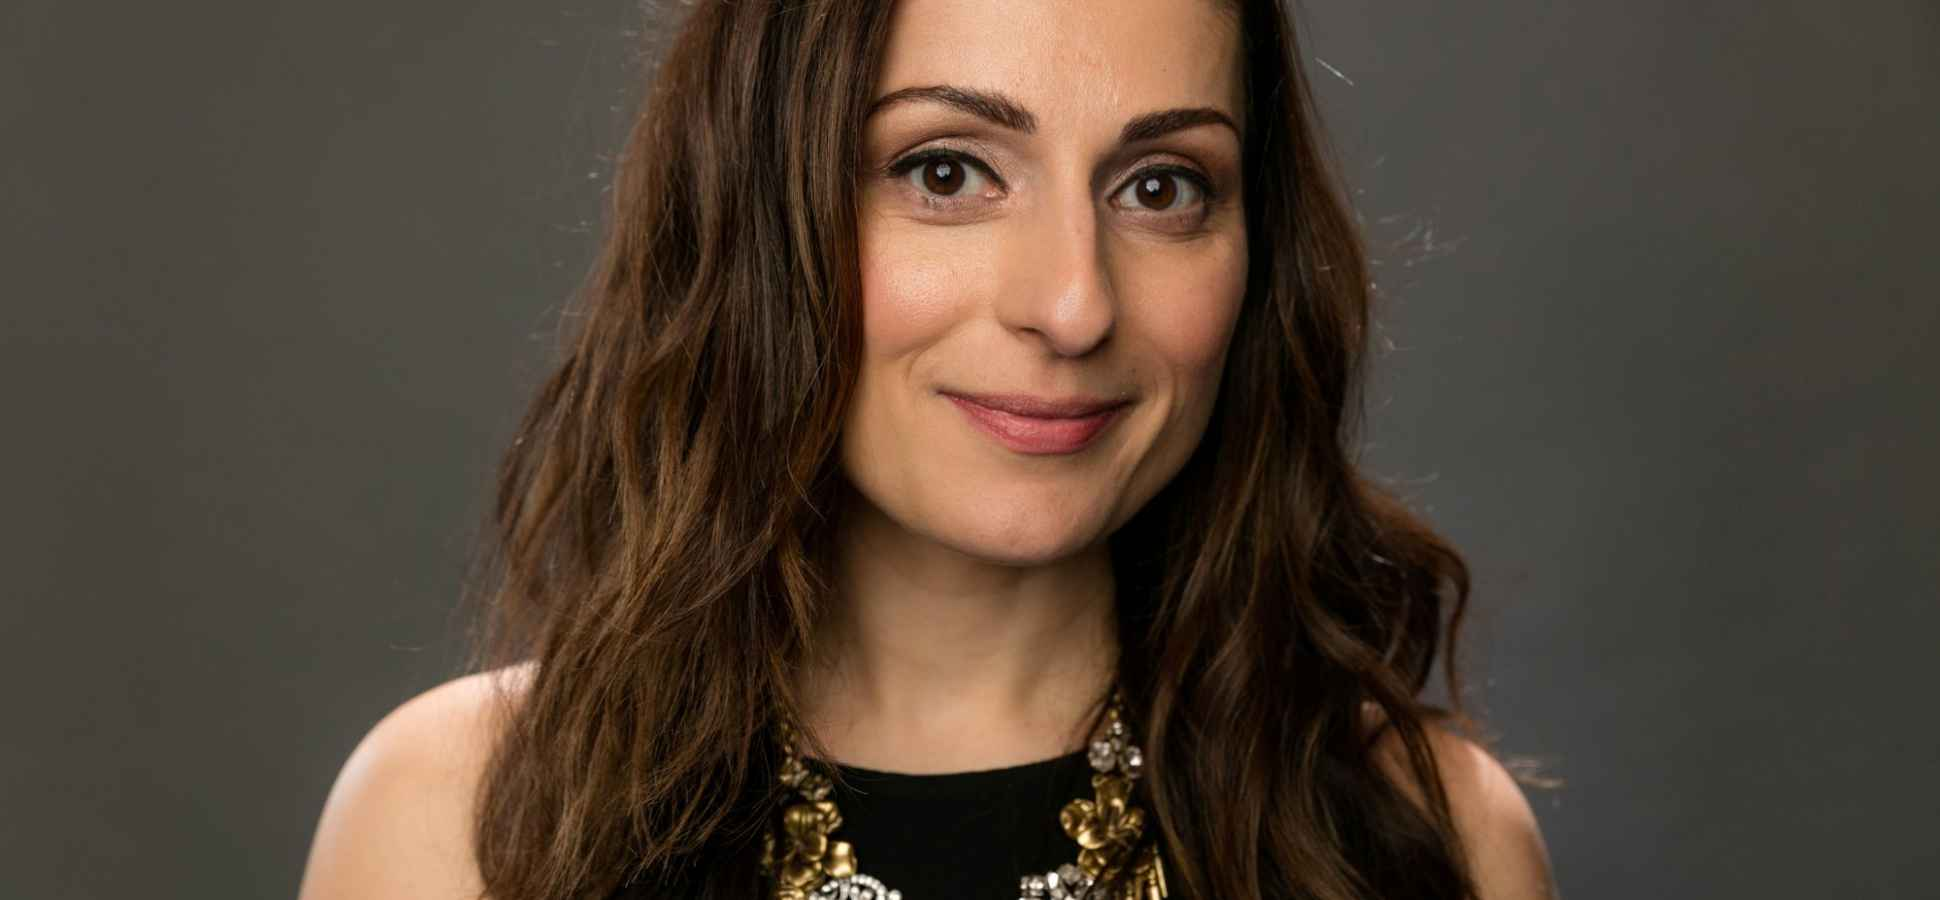 Personal Finance Expert Farnoosh Torabi Has 5 Tips For Business Owners